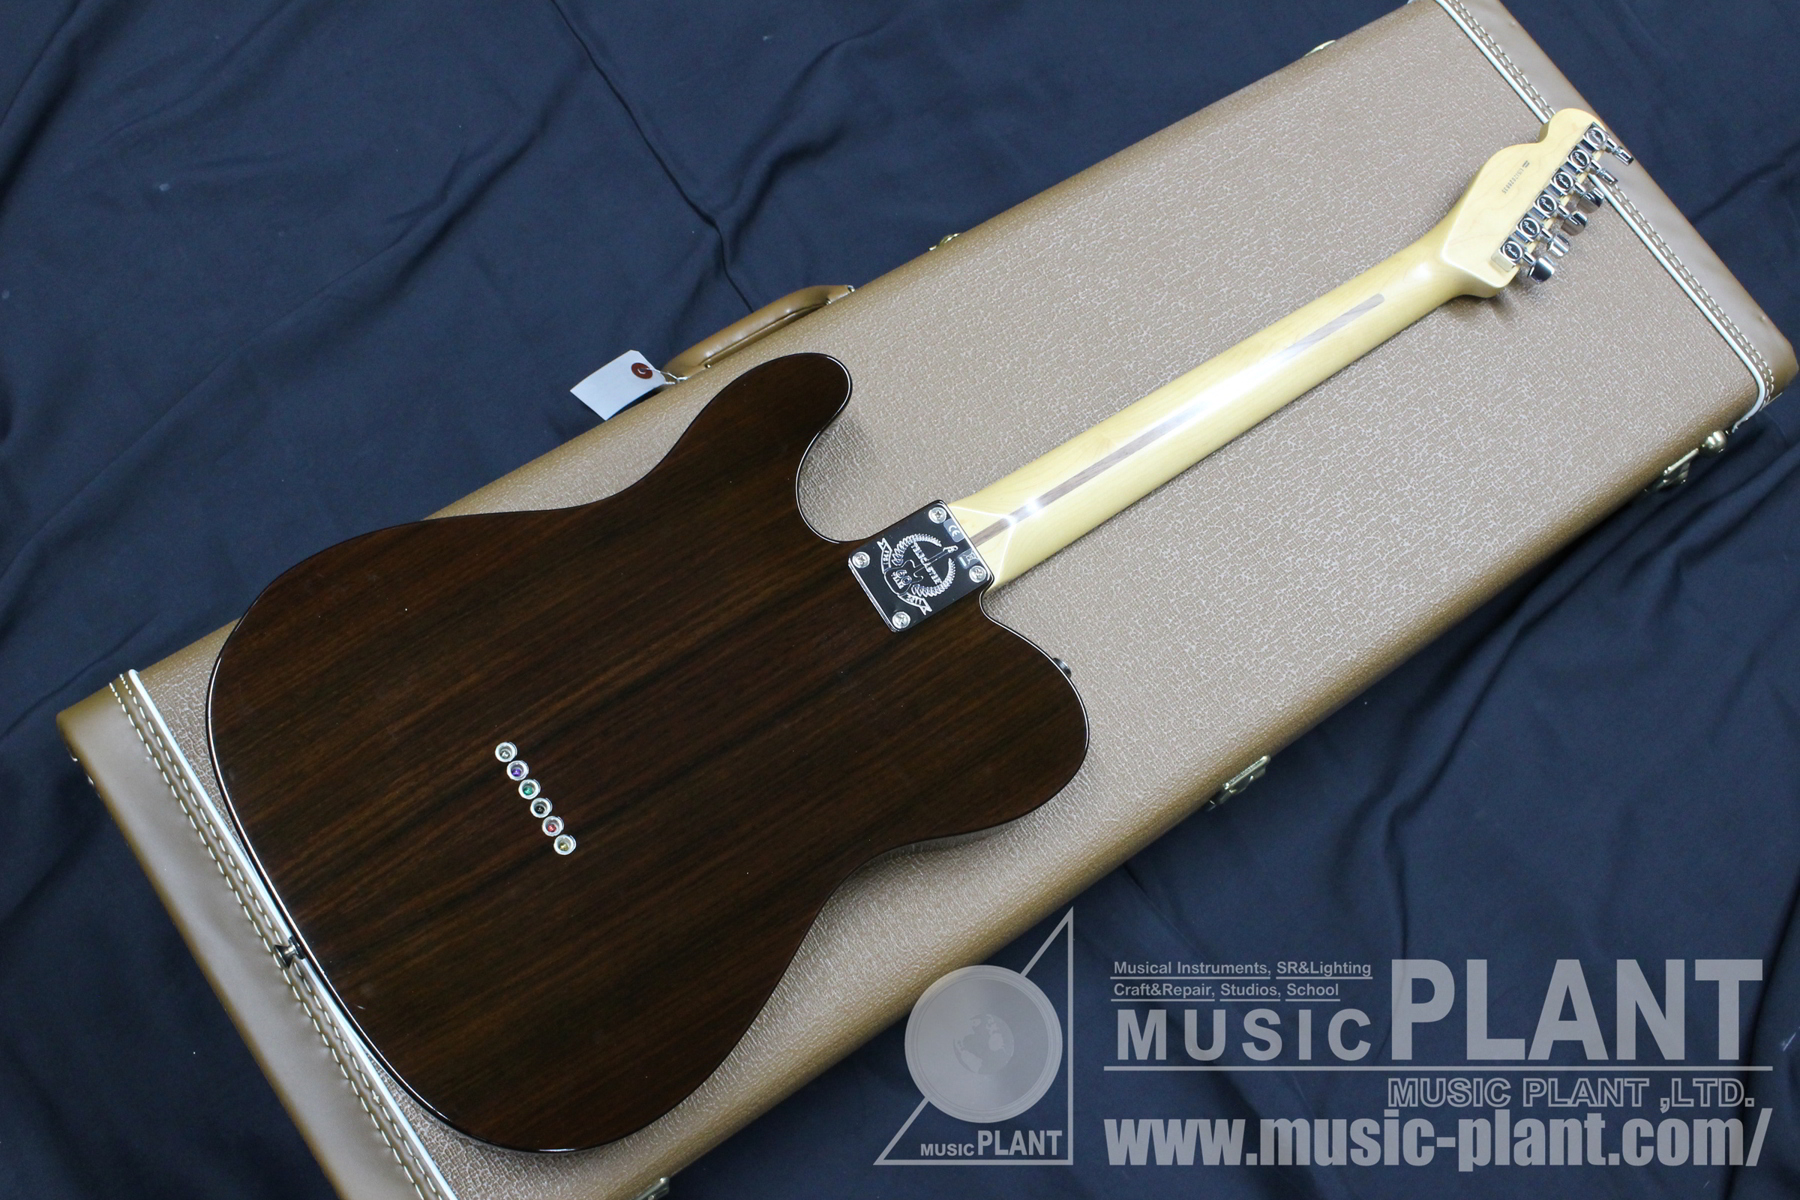 2012 Limited 60th Anniversary Tele-bration Lite Rosewood Telecaster背面画像